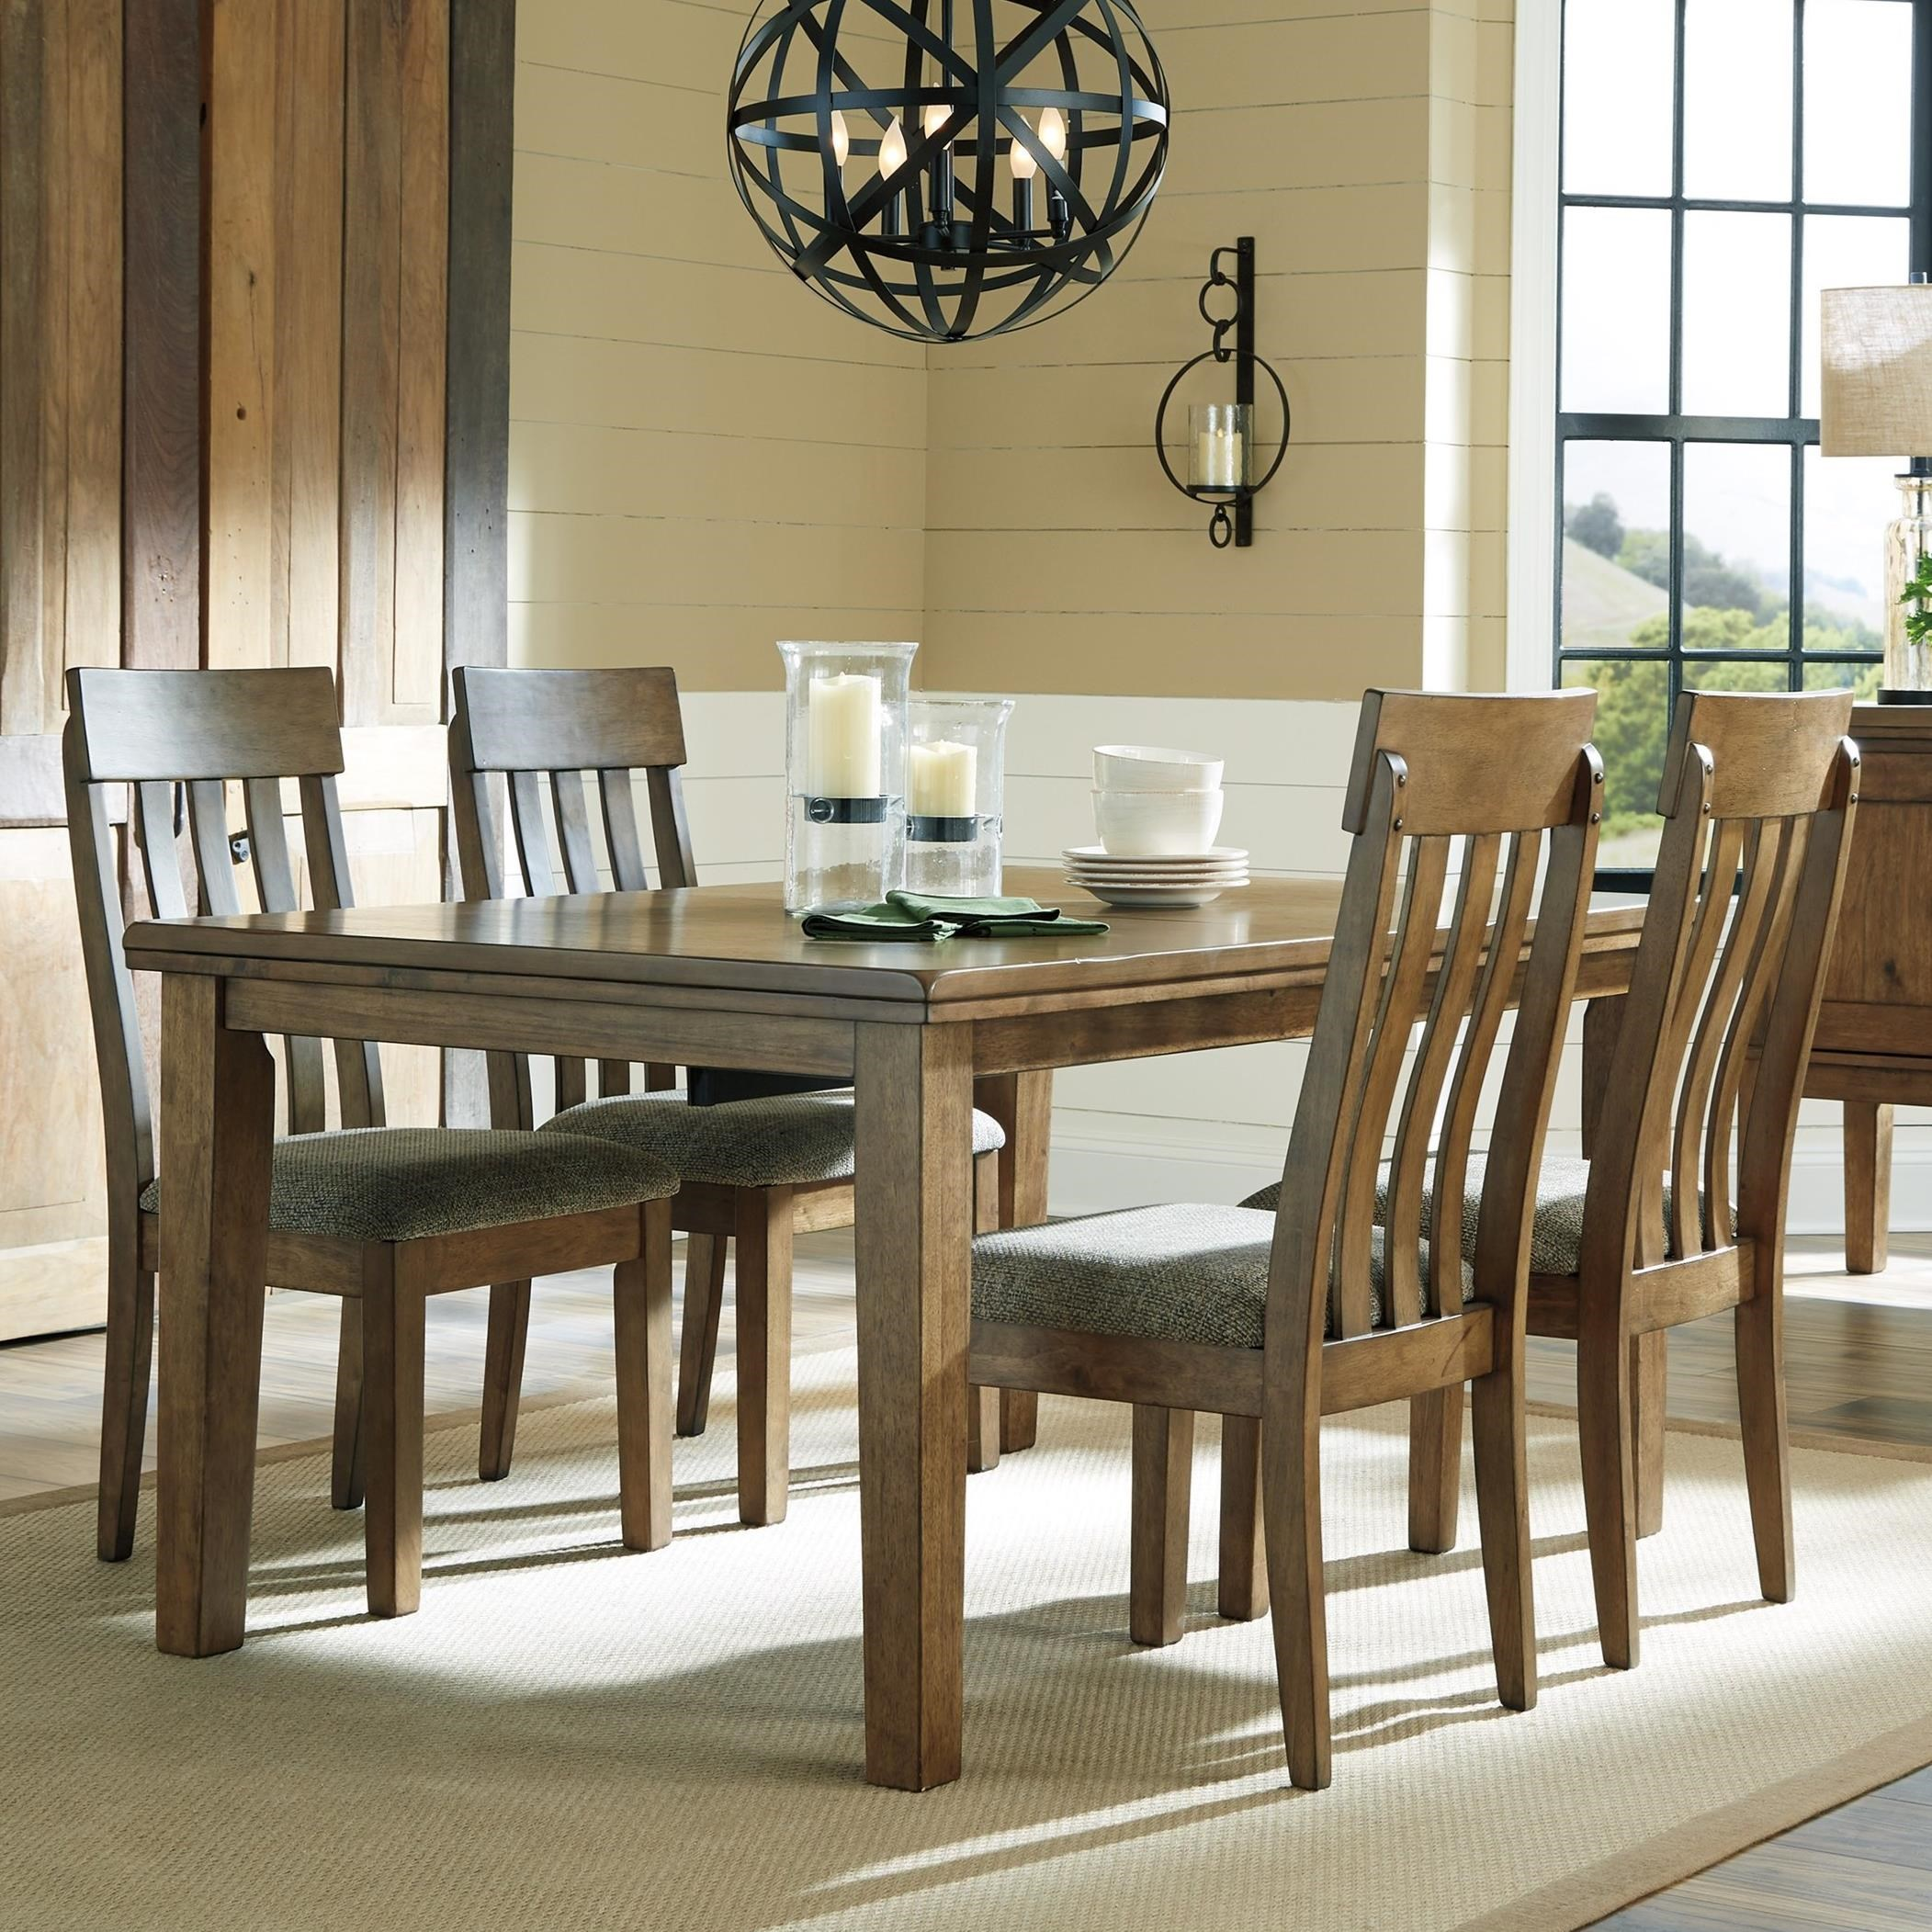 5 Chair Dining Set: Benchcraft Flaybern 5-Piece Rectangular Table And Chair